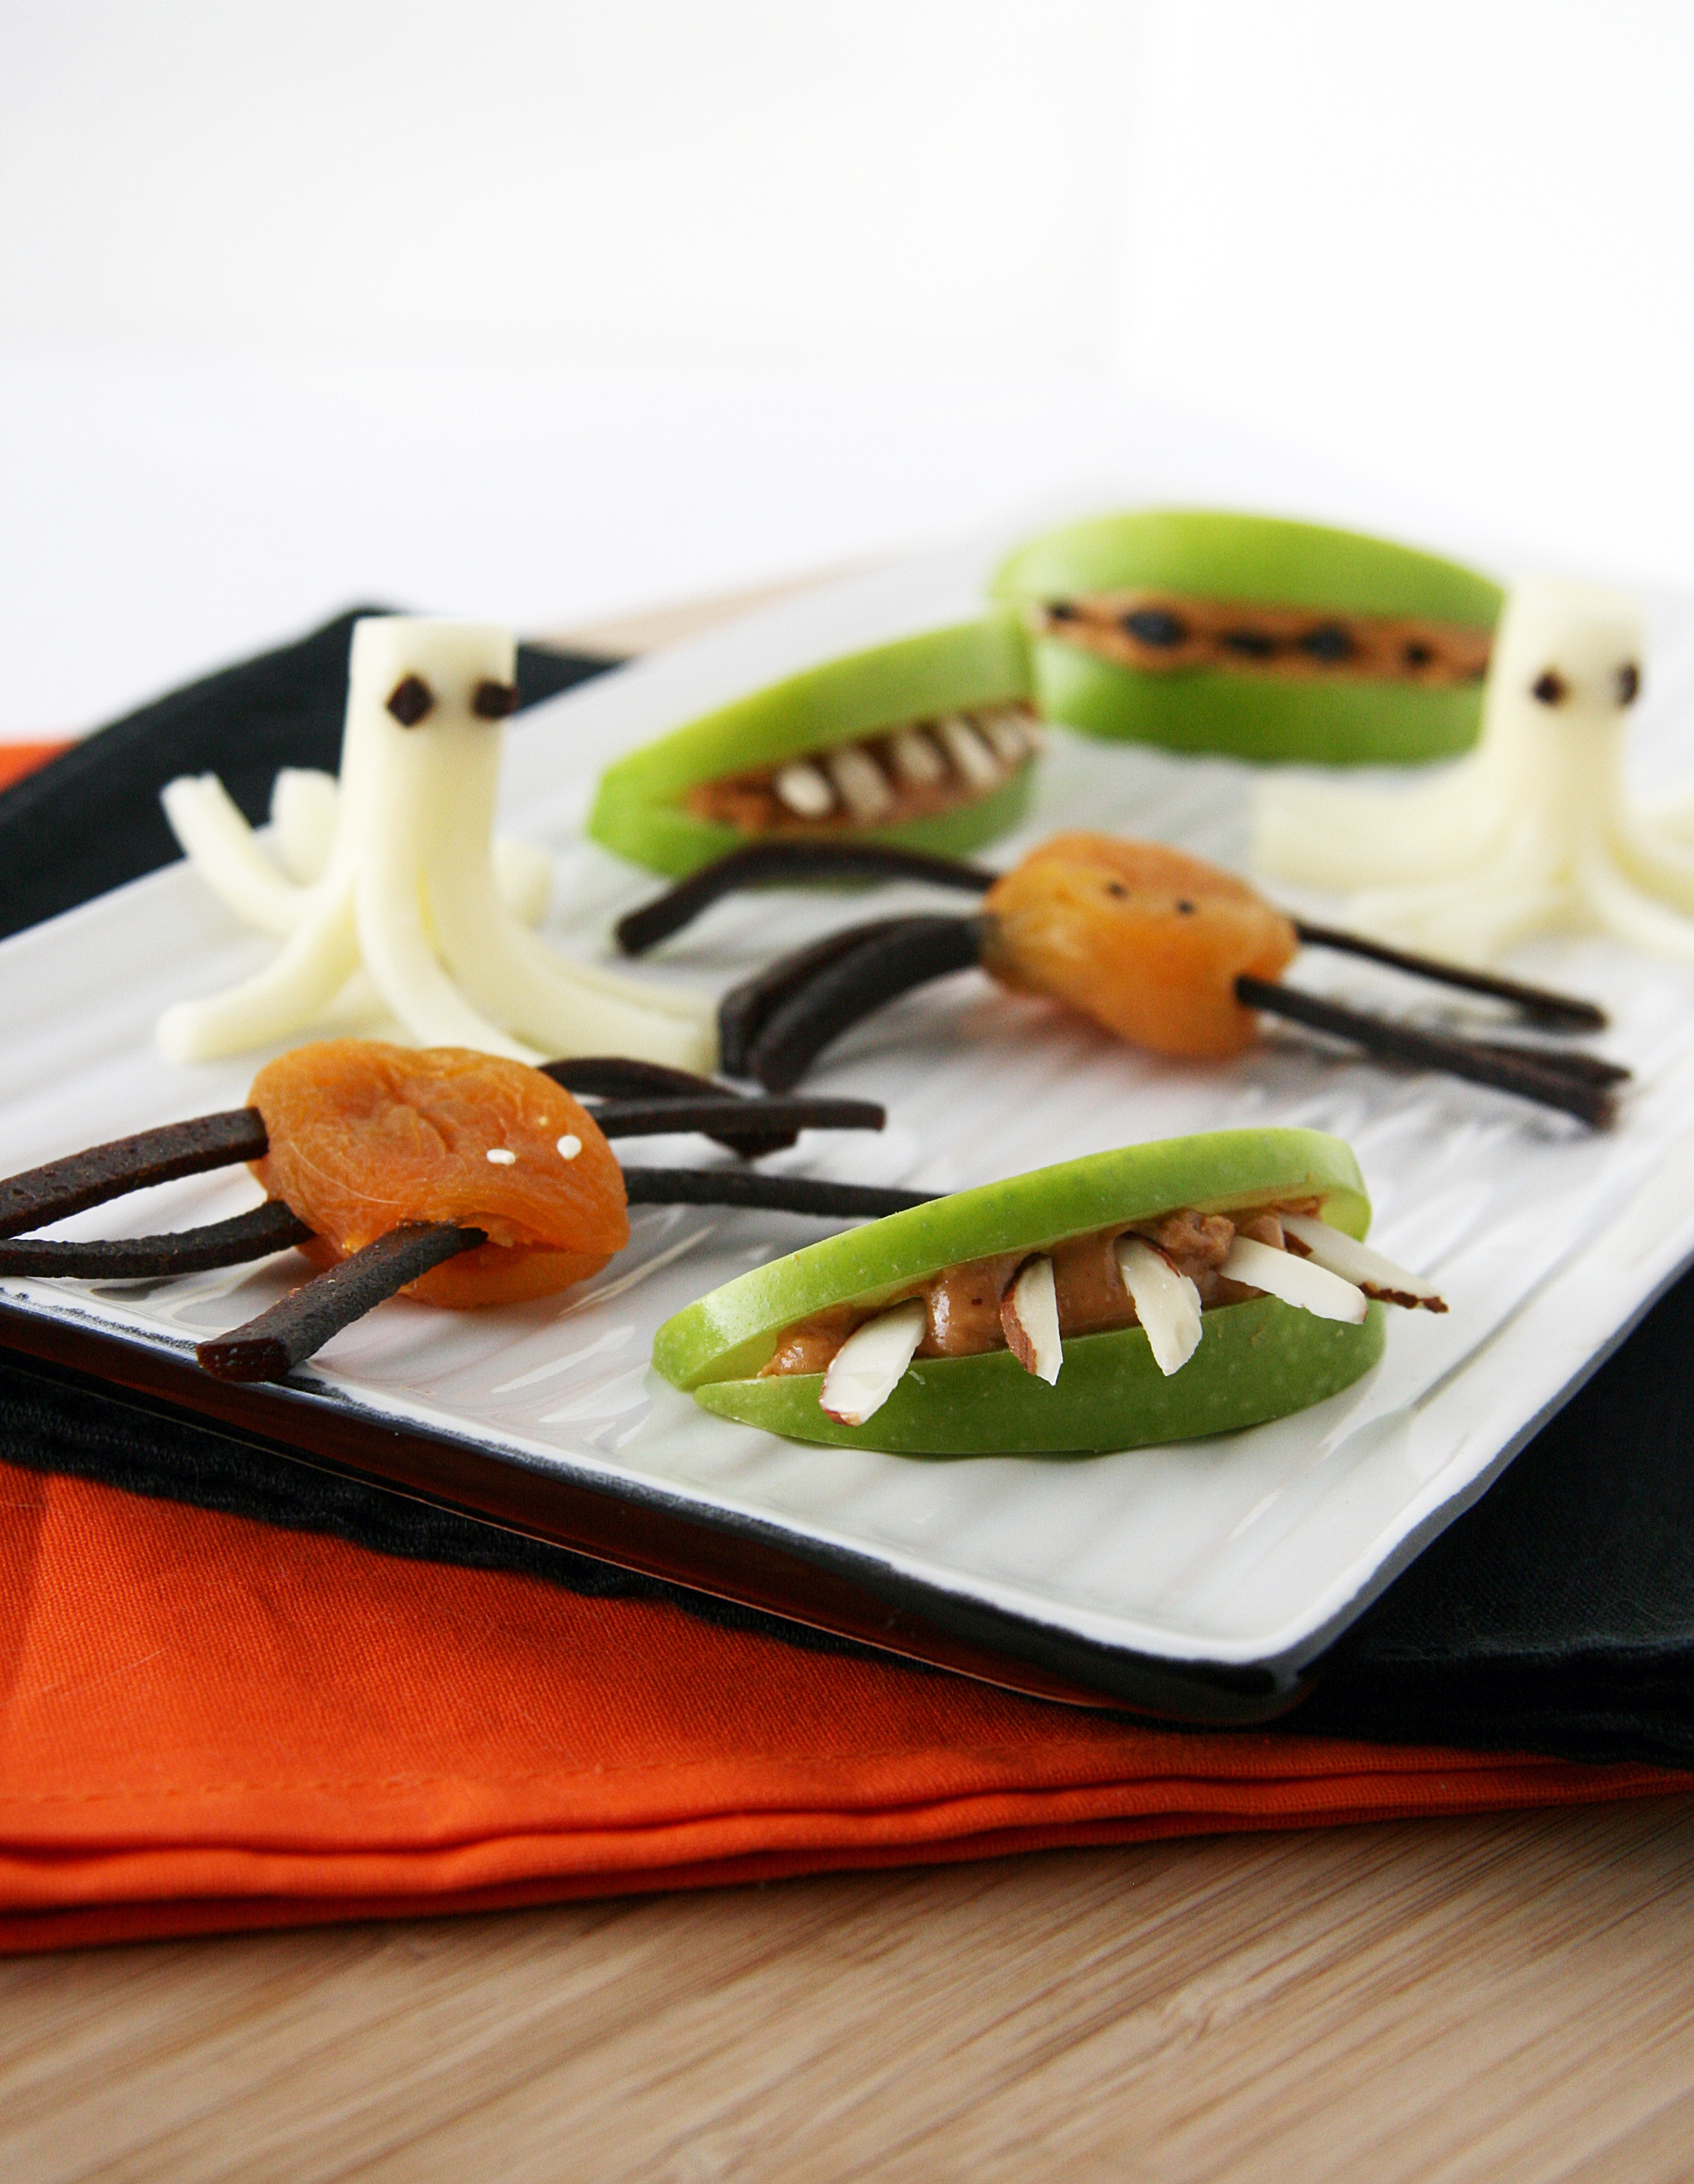 healthy halloween snacks healthy snacks for kids for work for school for weight loss tumblr for kids at scool recipes for teenagers photos - Healthy Fun Halloween Snacks